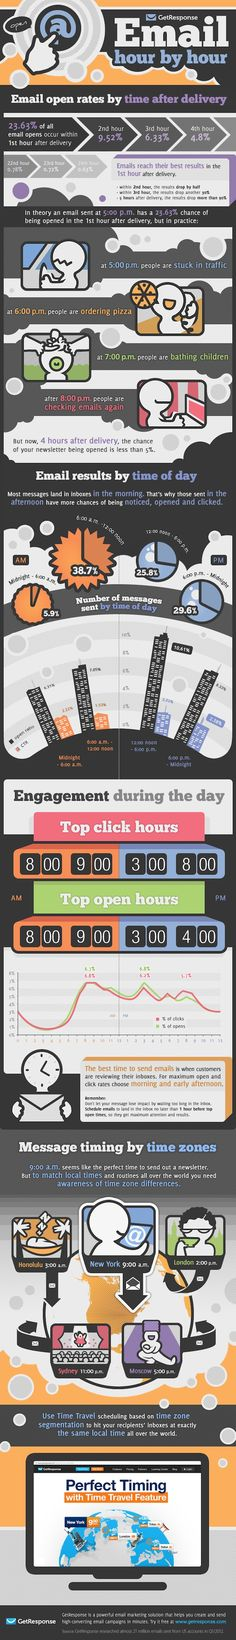 Best email sending time infographic.